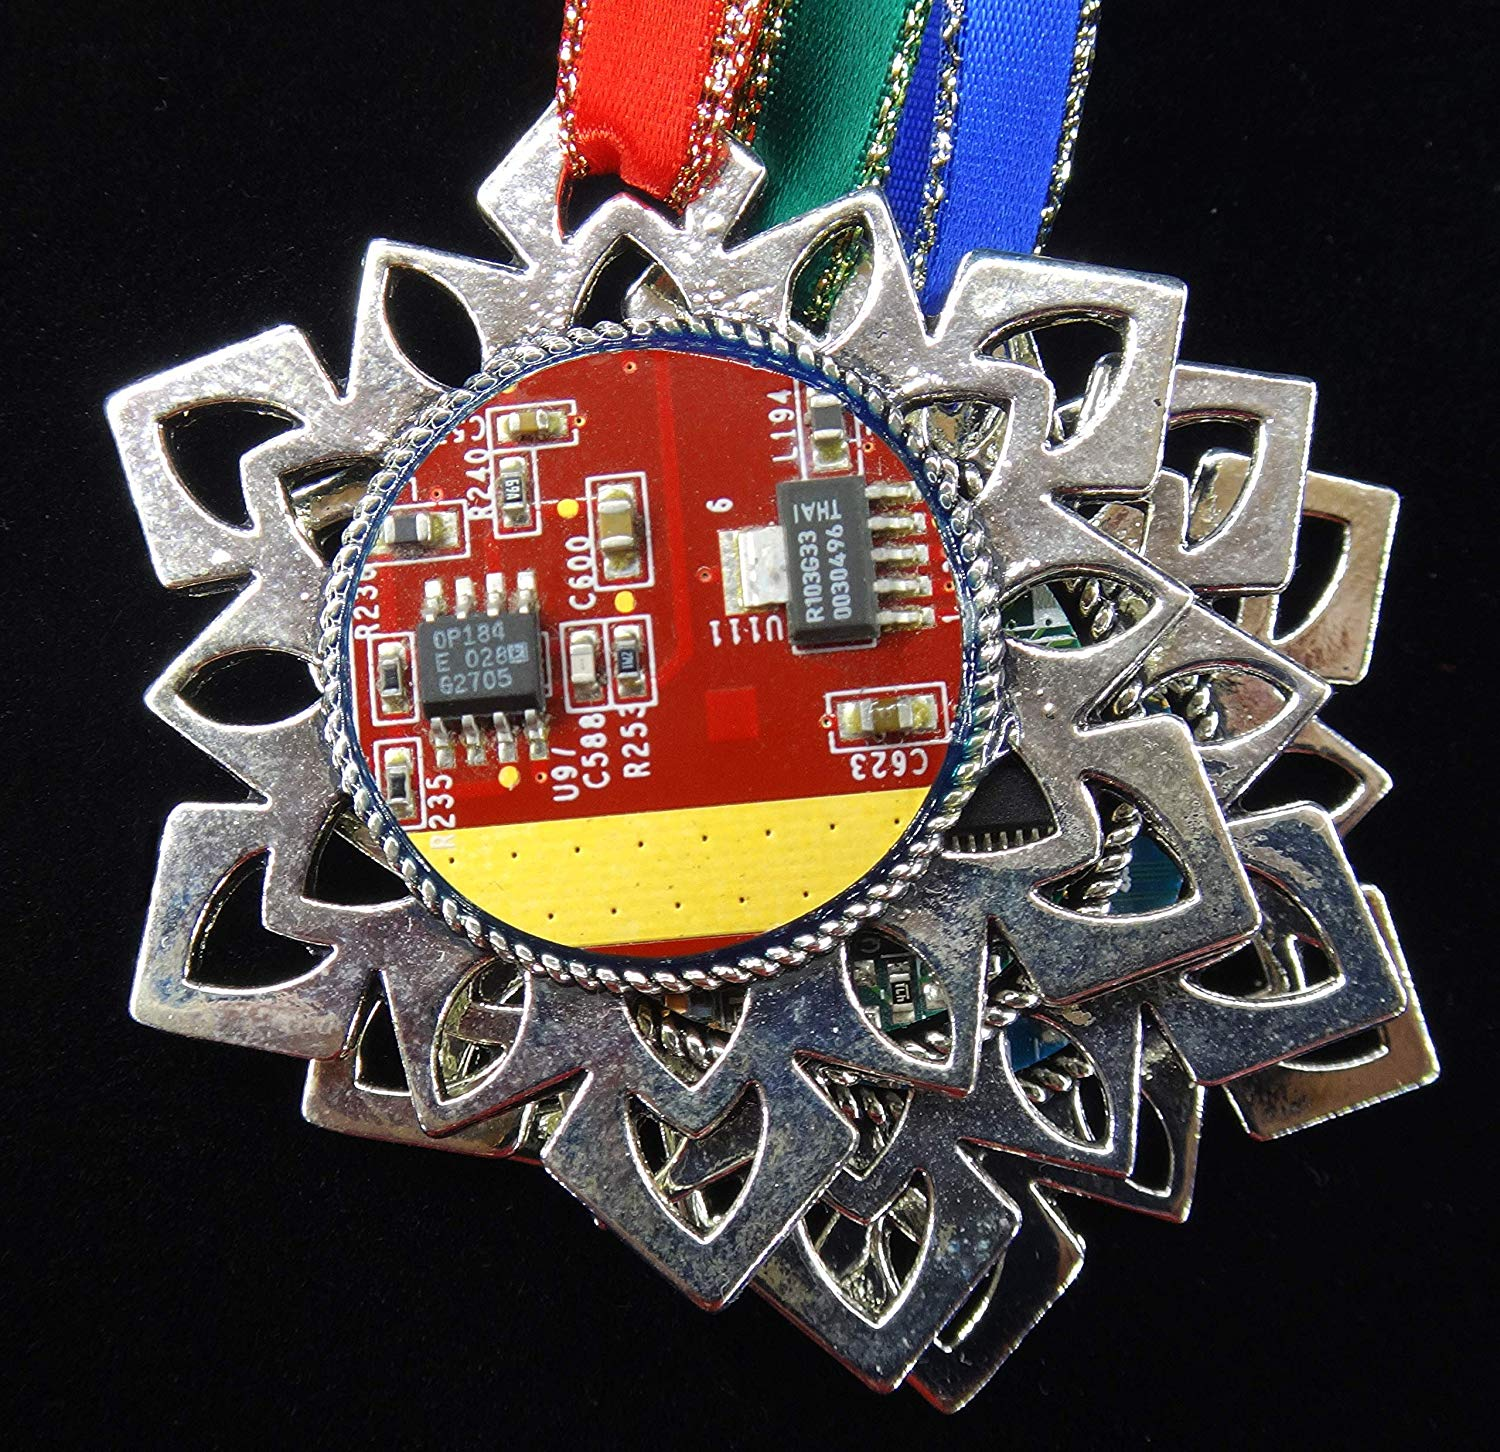 3 Ornaments - ChipScapes Ornaments Set #5: Electronic Circuit Boards (PCB) with Computer Chips